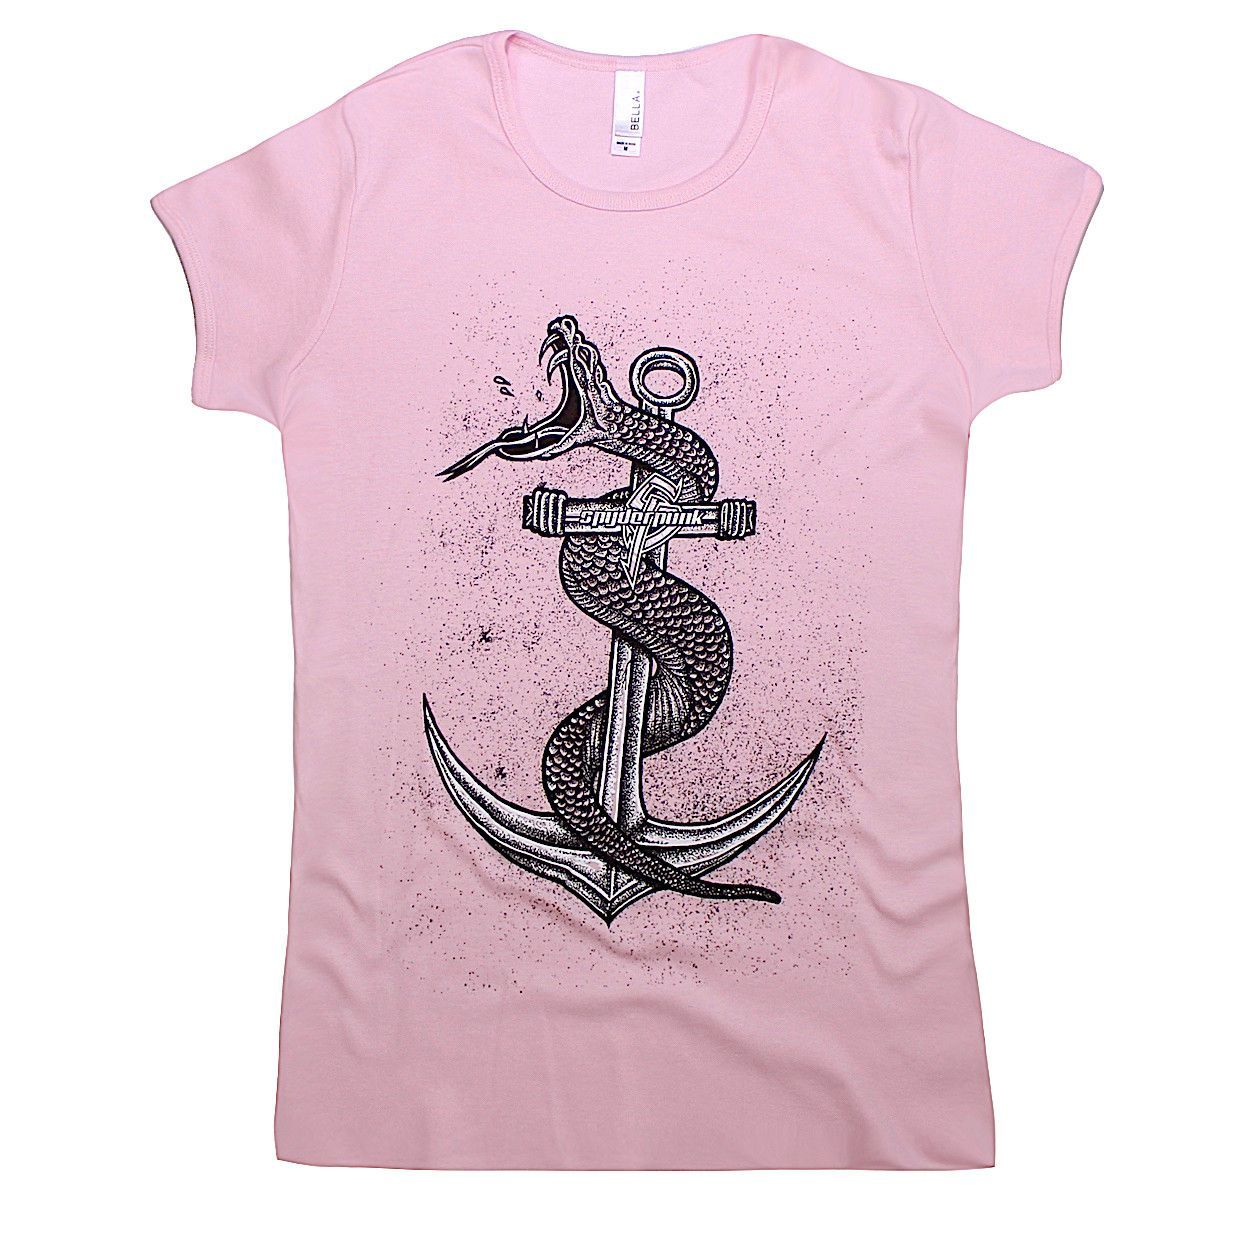 Women's Snake & Anchor Tee in Pink